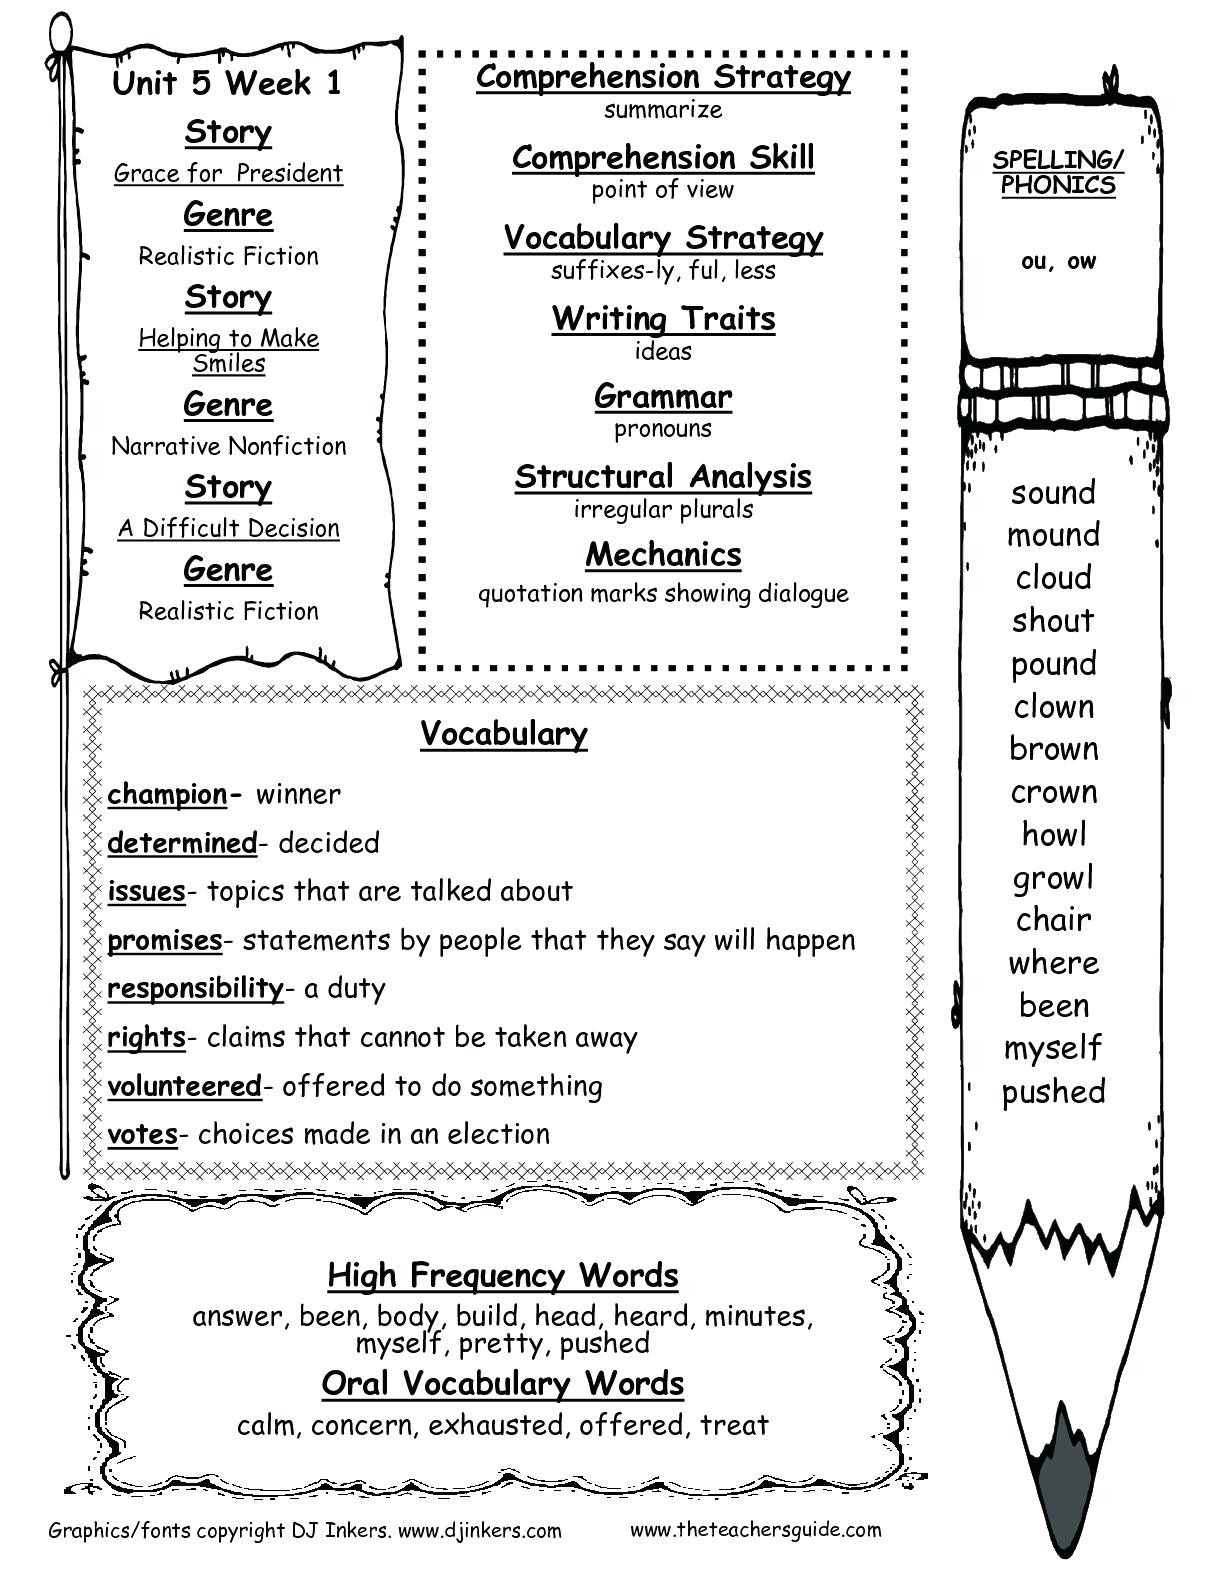 Summarizing Worksheets 2nd Grade Summarizing Worksheets 2nd Grade Free Printable